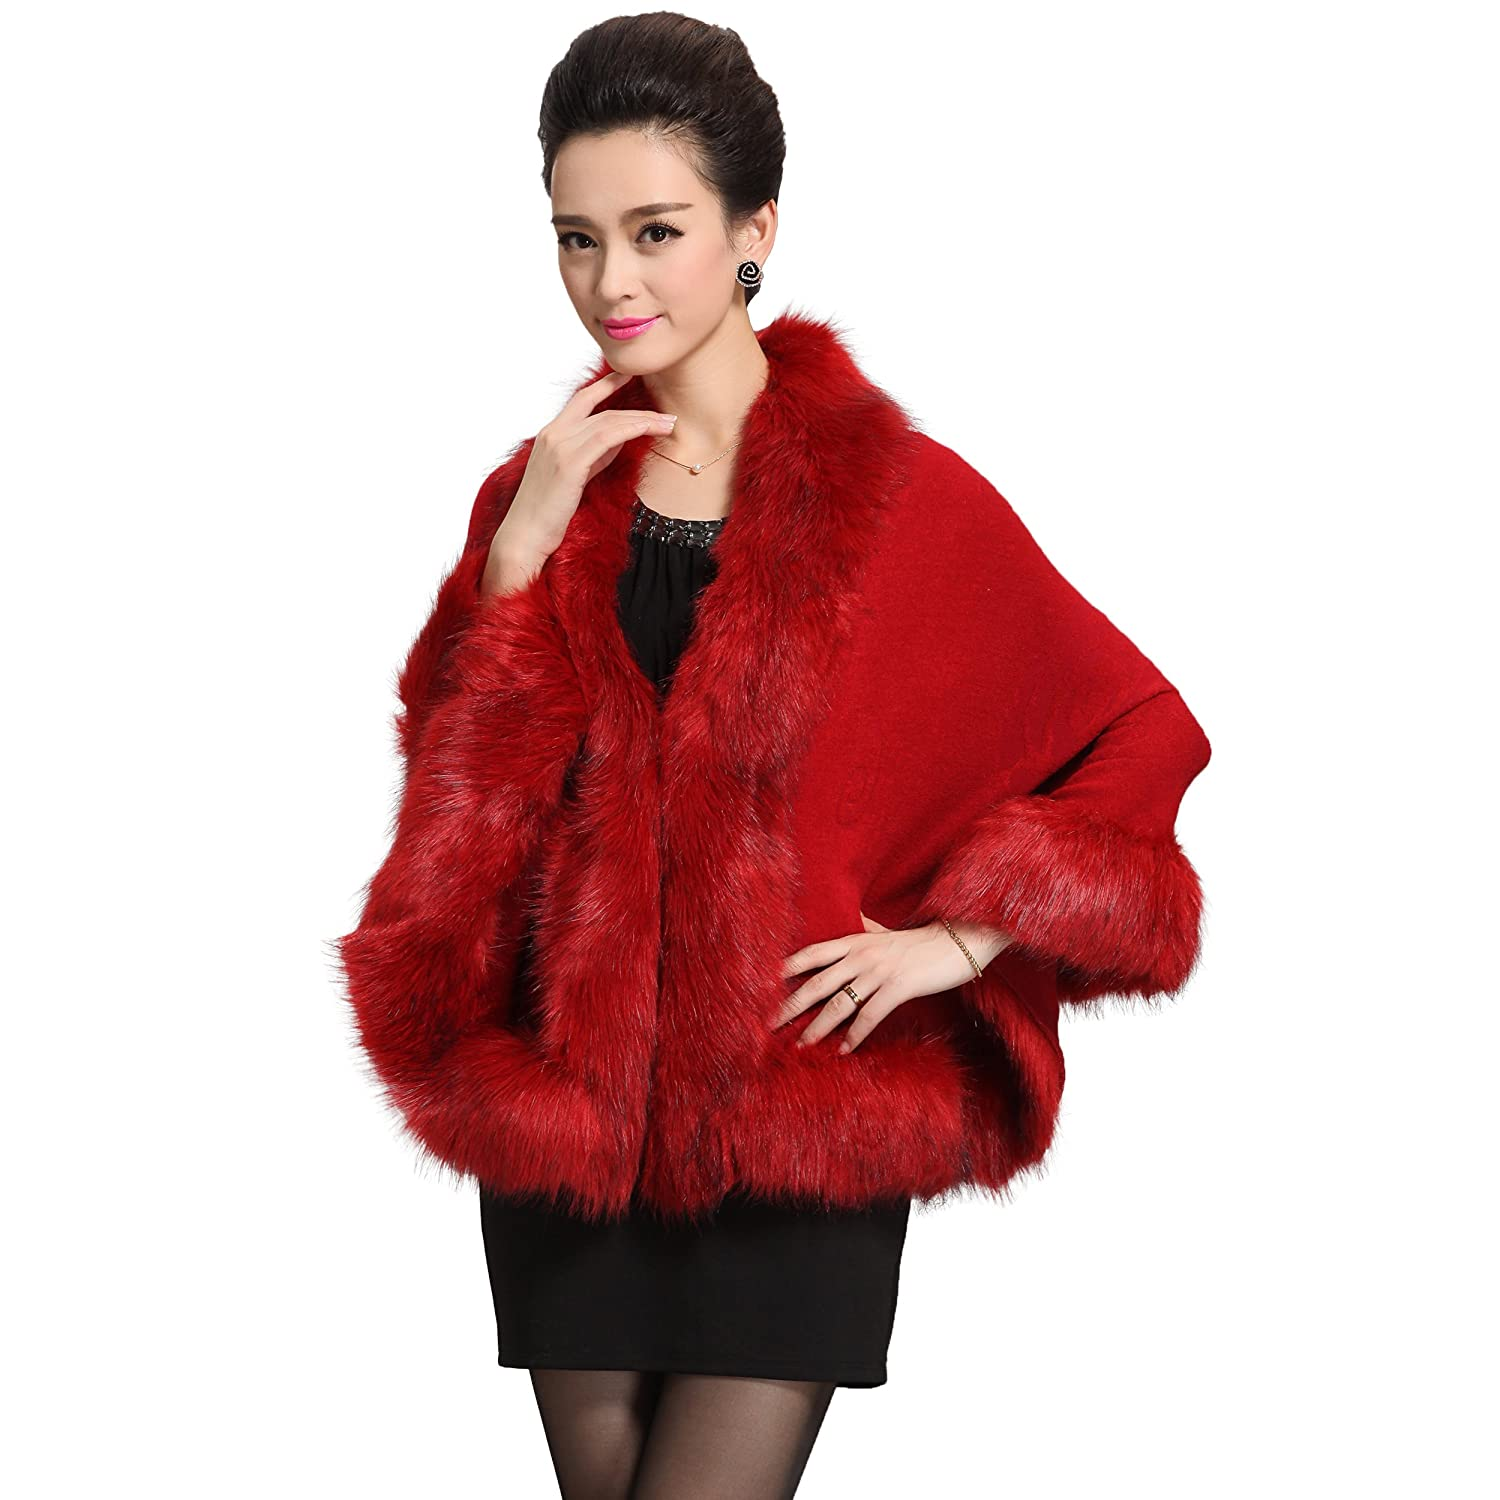 Caracilia Women Luxury Bridal Faux Fur Shawl Wraps Cloak Coat Sweater Cape duanpijian--mi